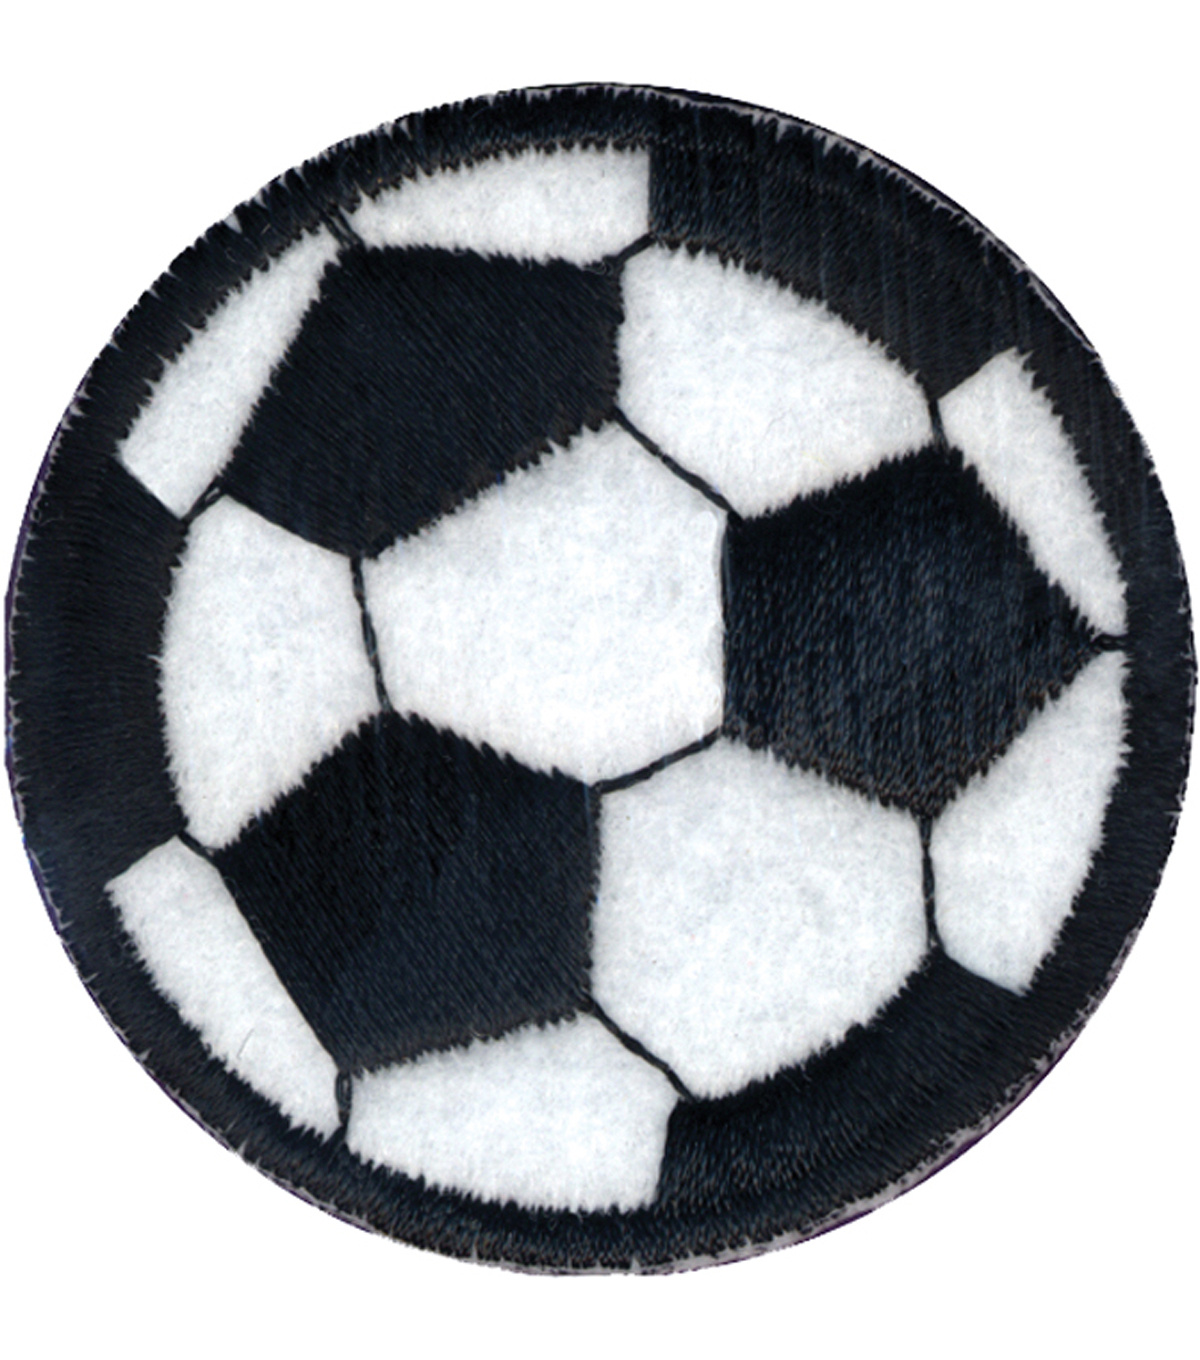 Wrights Iron-On Appliques-Soccer Ball 2\u0022 1/Pkg